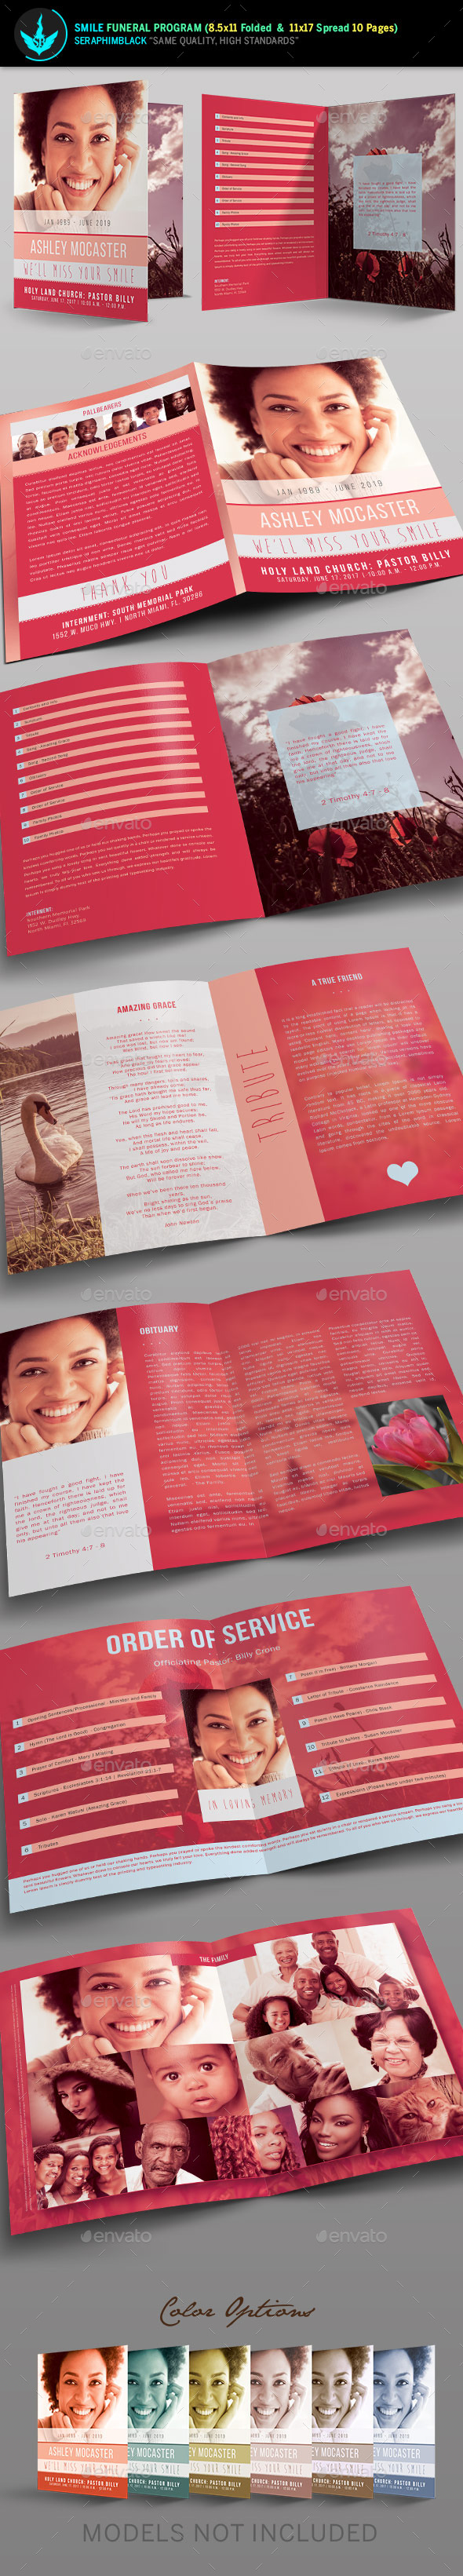 Smile Funeral Program Template - Informational Brochures